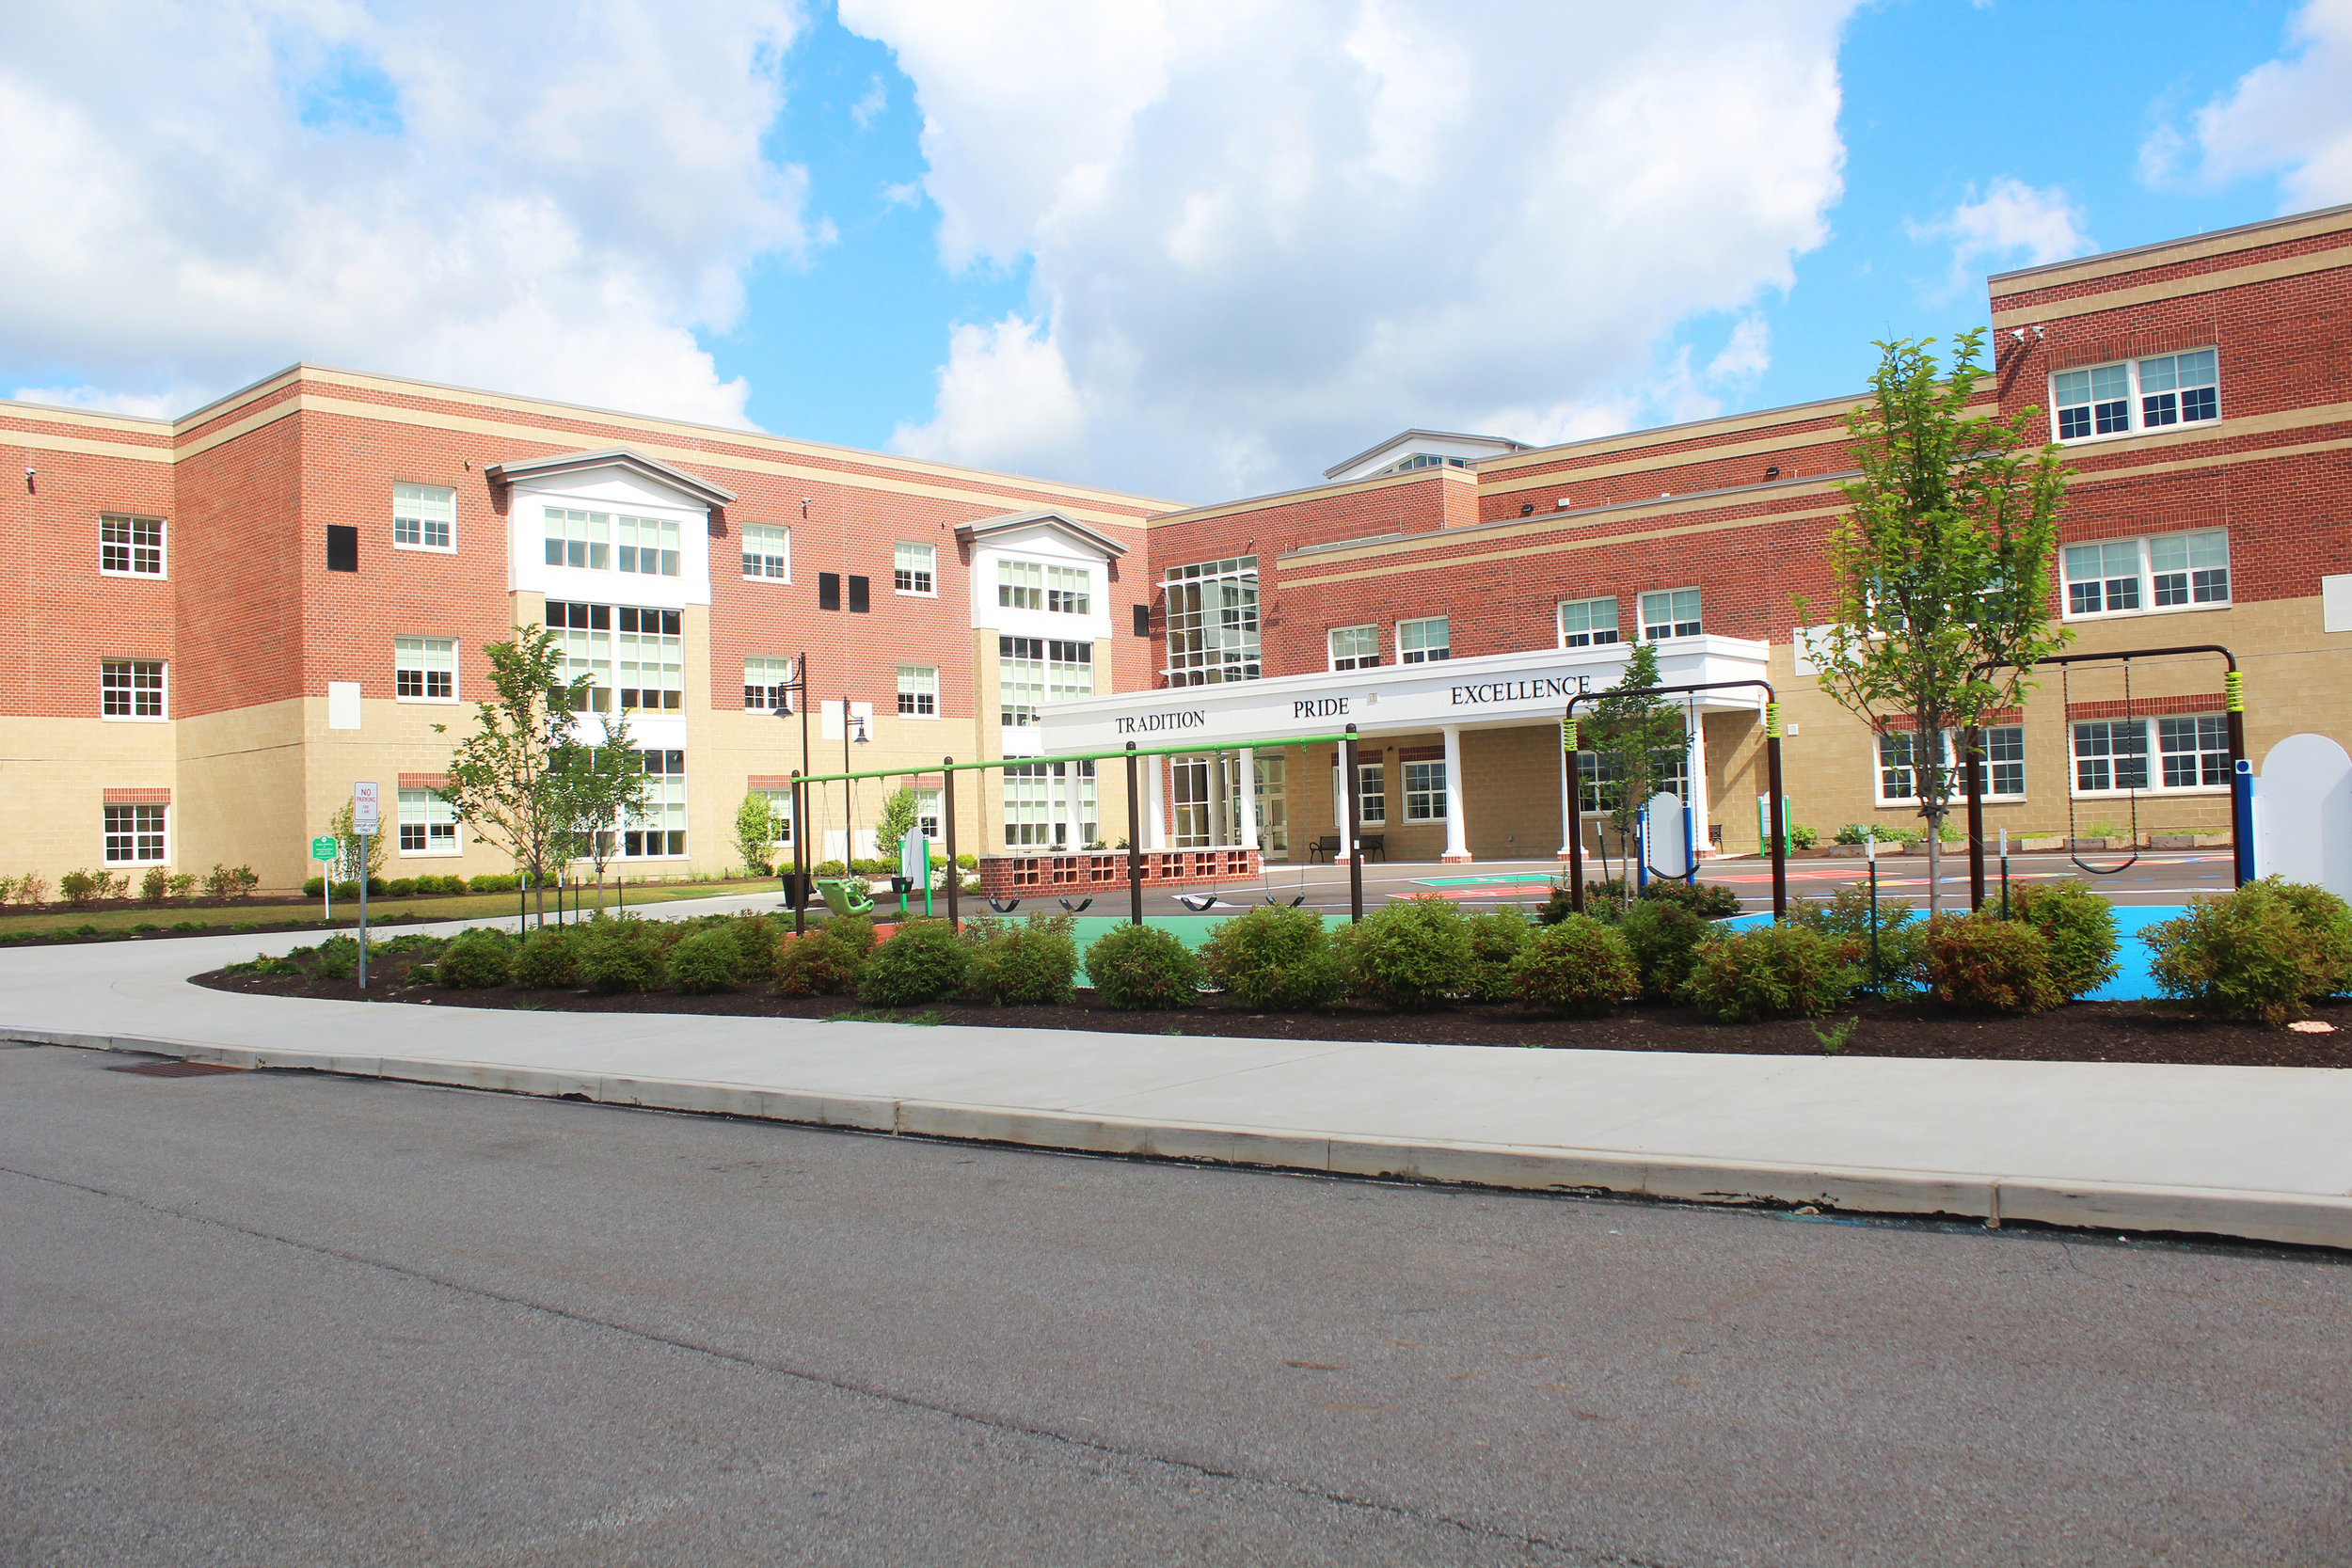 South Fayette Intermediate School